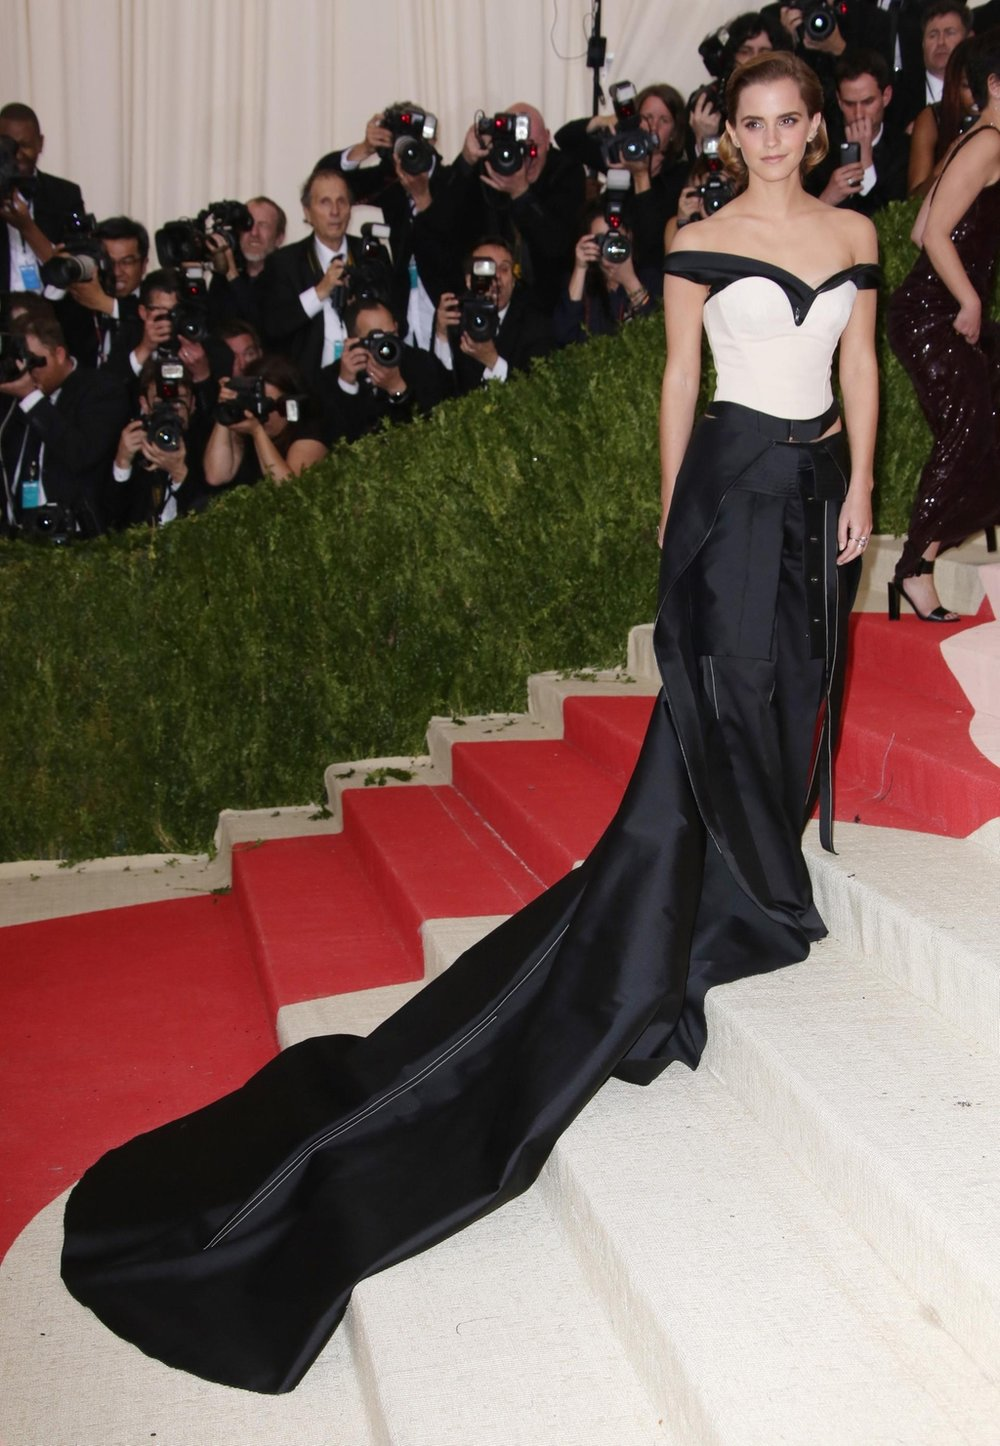 Calvin Klein gown made from recycled plastic bottles worn by Emma Watson to the MET Gala 2016 / Photo: Matt Baron/REX/ Shutterstock